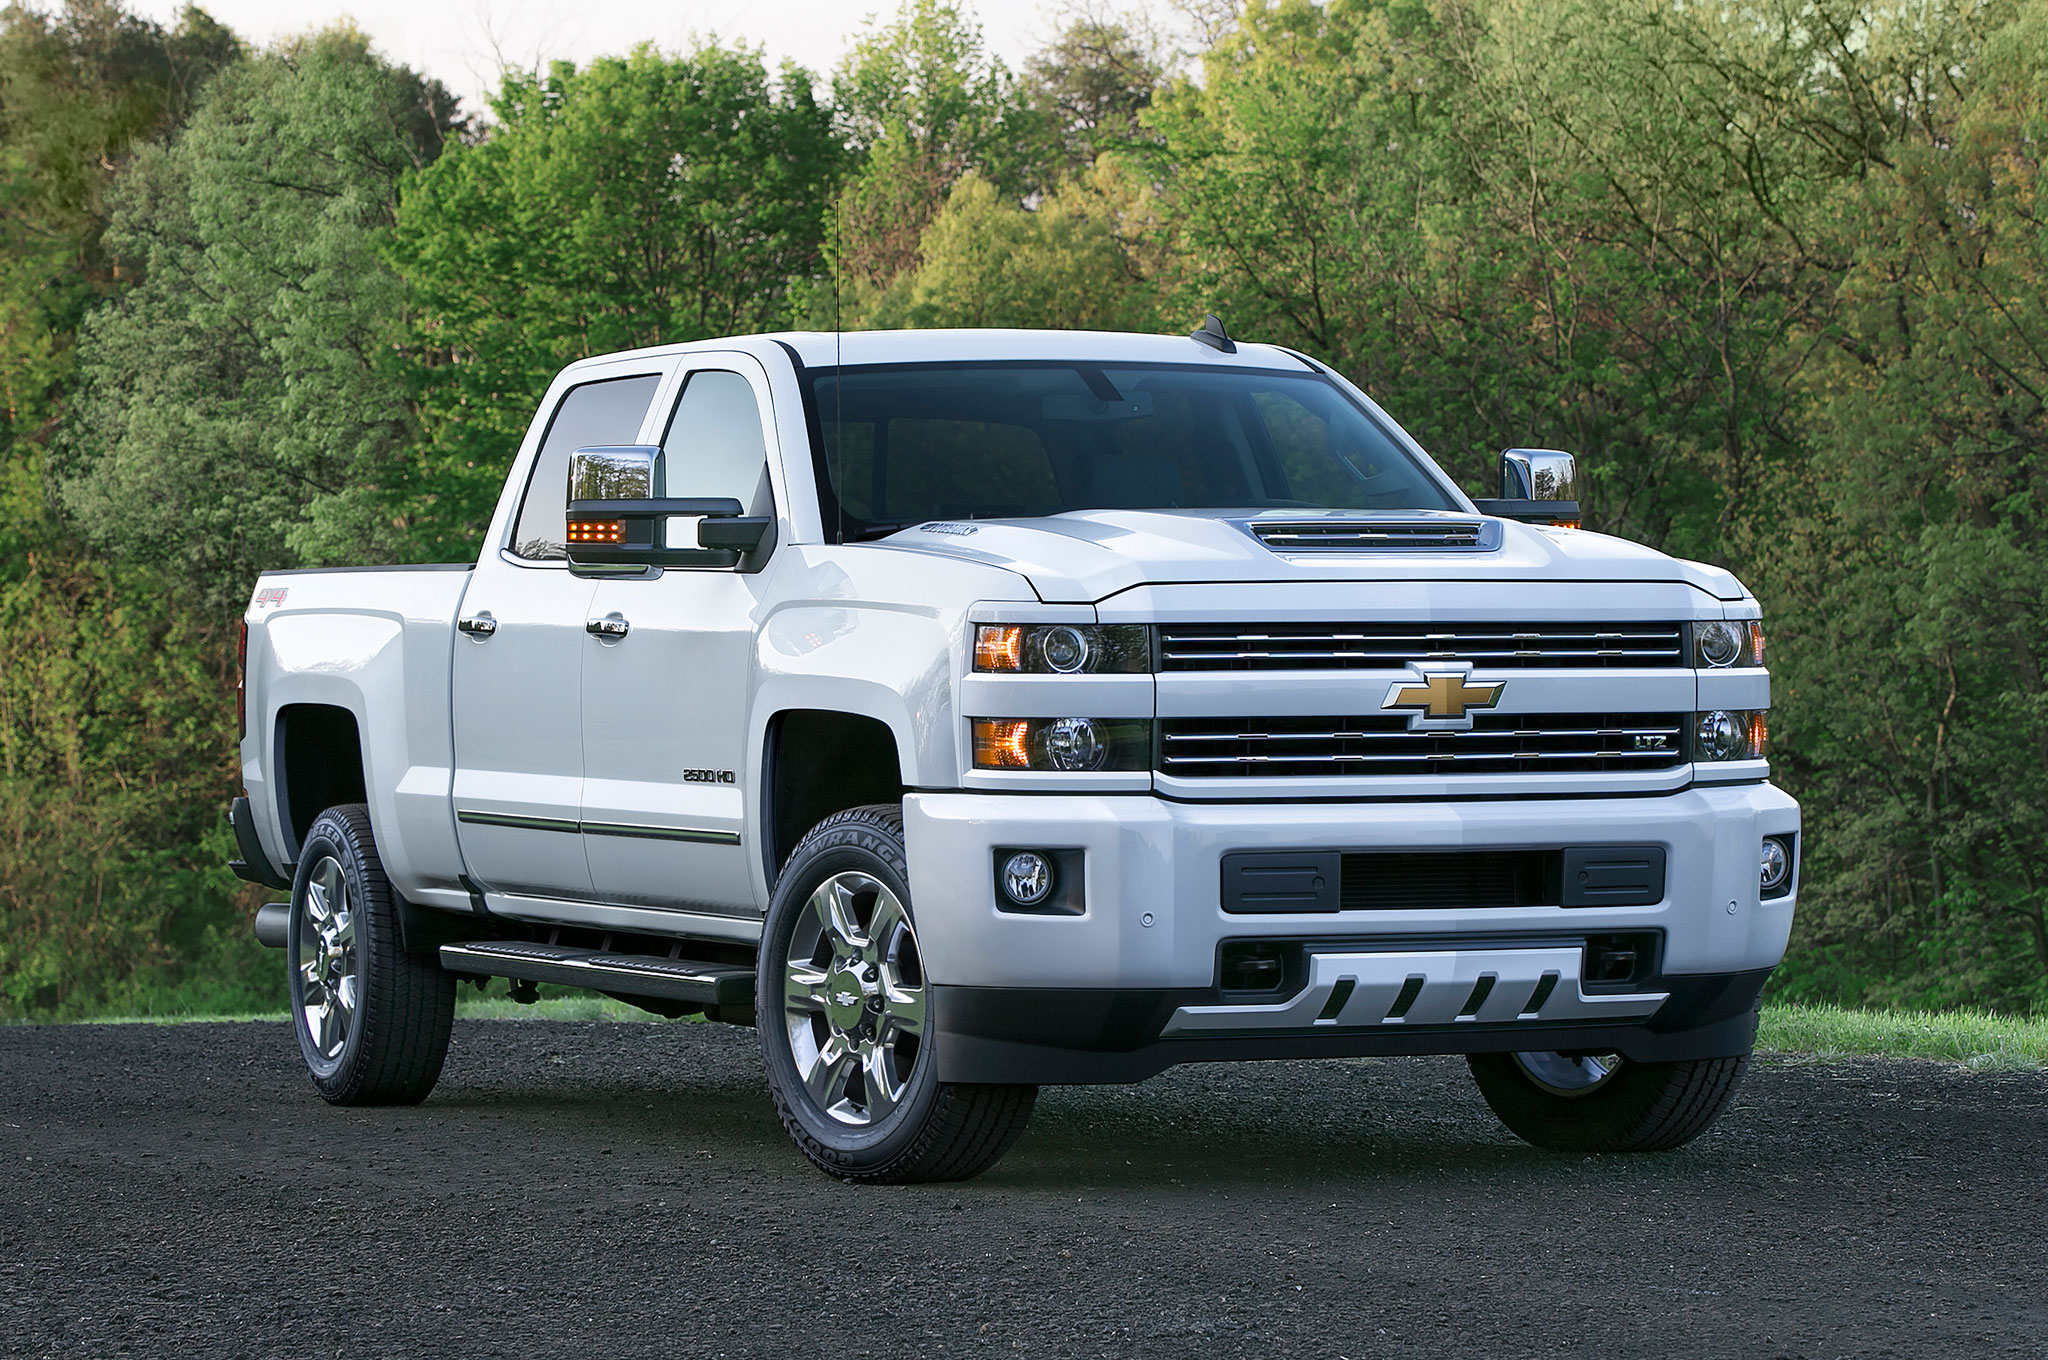 Sensational 2017 Chevrolet Silverado Hd Adds Functional Ram Air Hood Scoop Wiring 101 Akebretraxxcnl